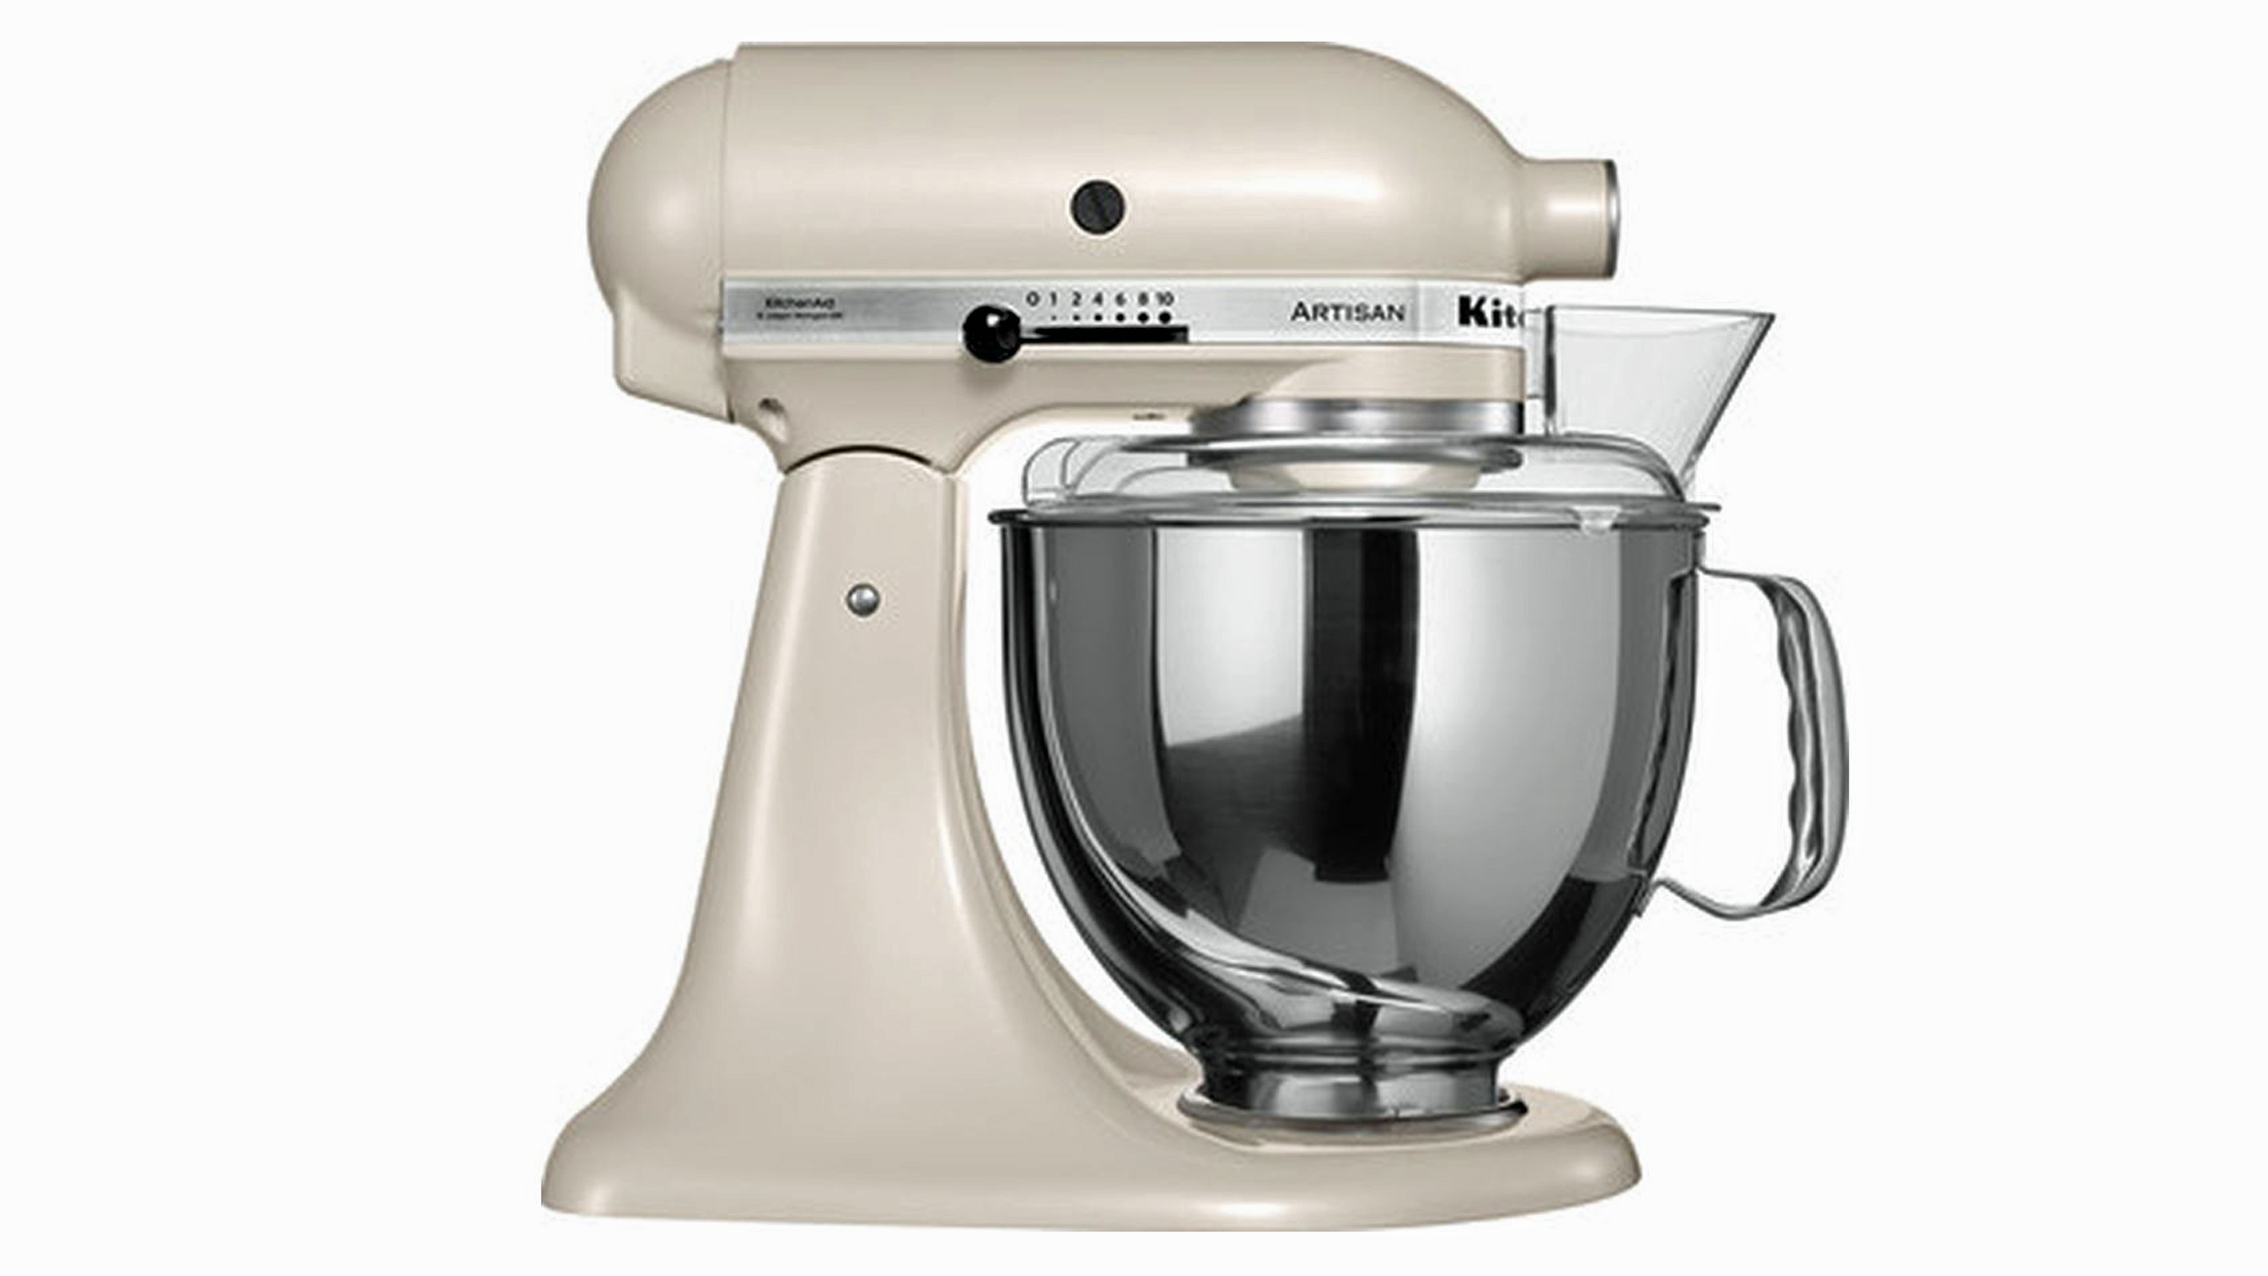 Get the KitchenAid Artisan Stand Mixer for just £279! | T3